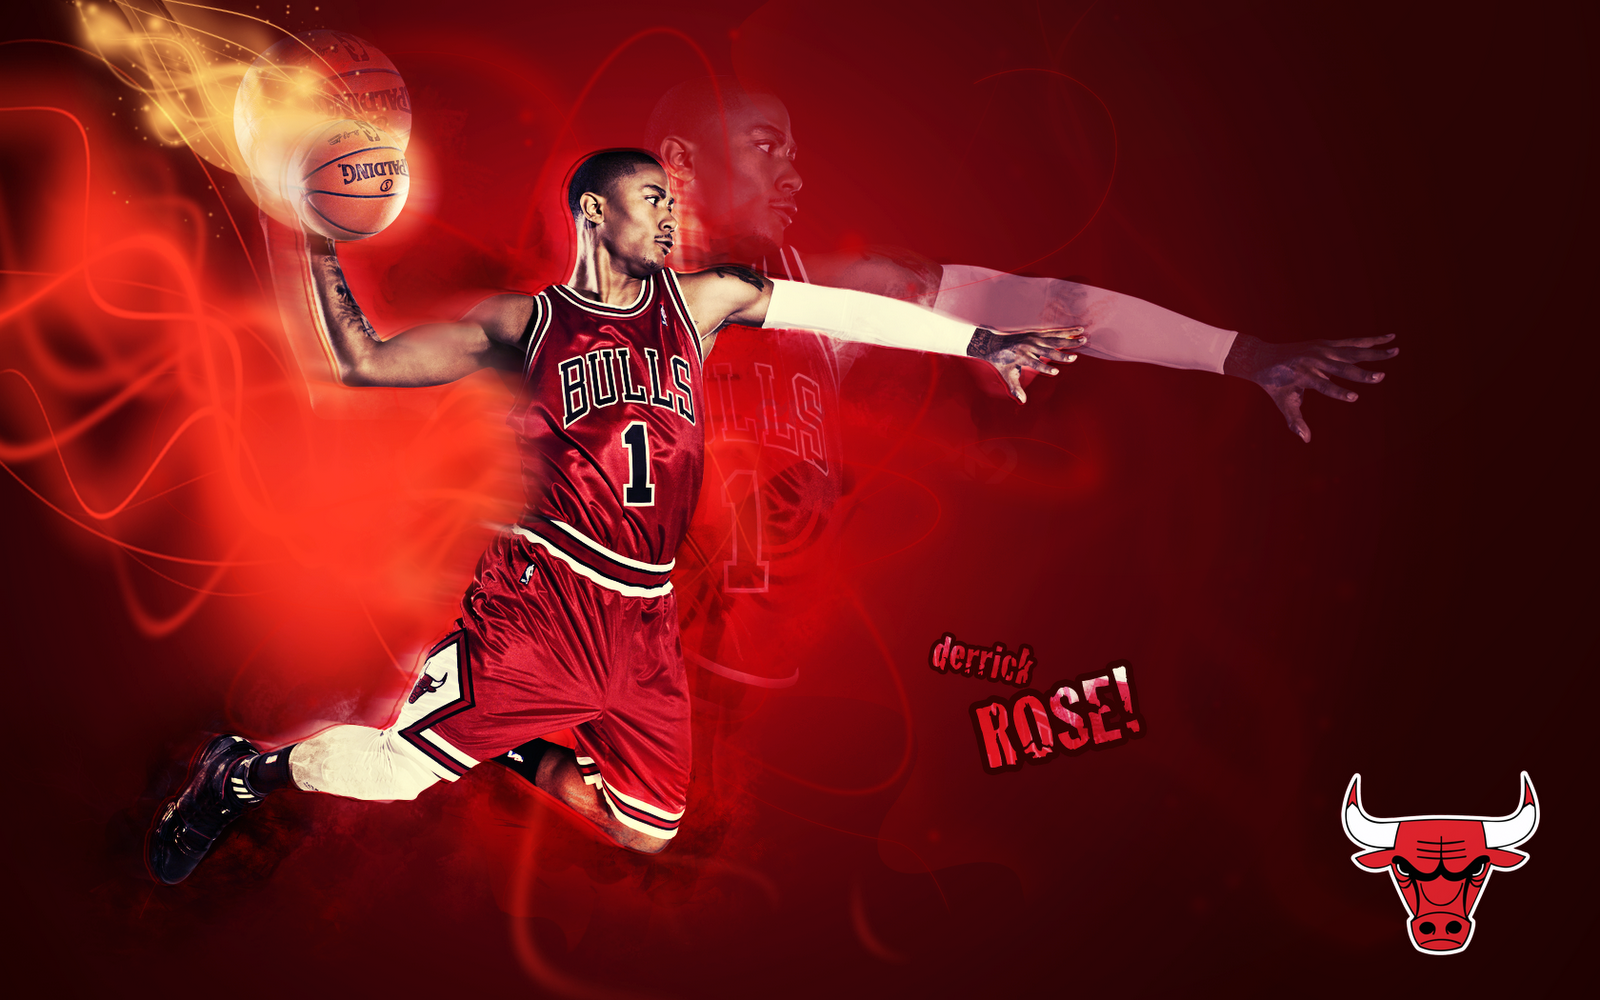 derrick rose bulls wallpaperpng 1600x1000